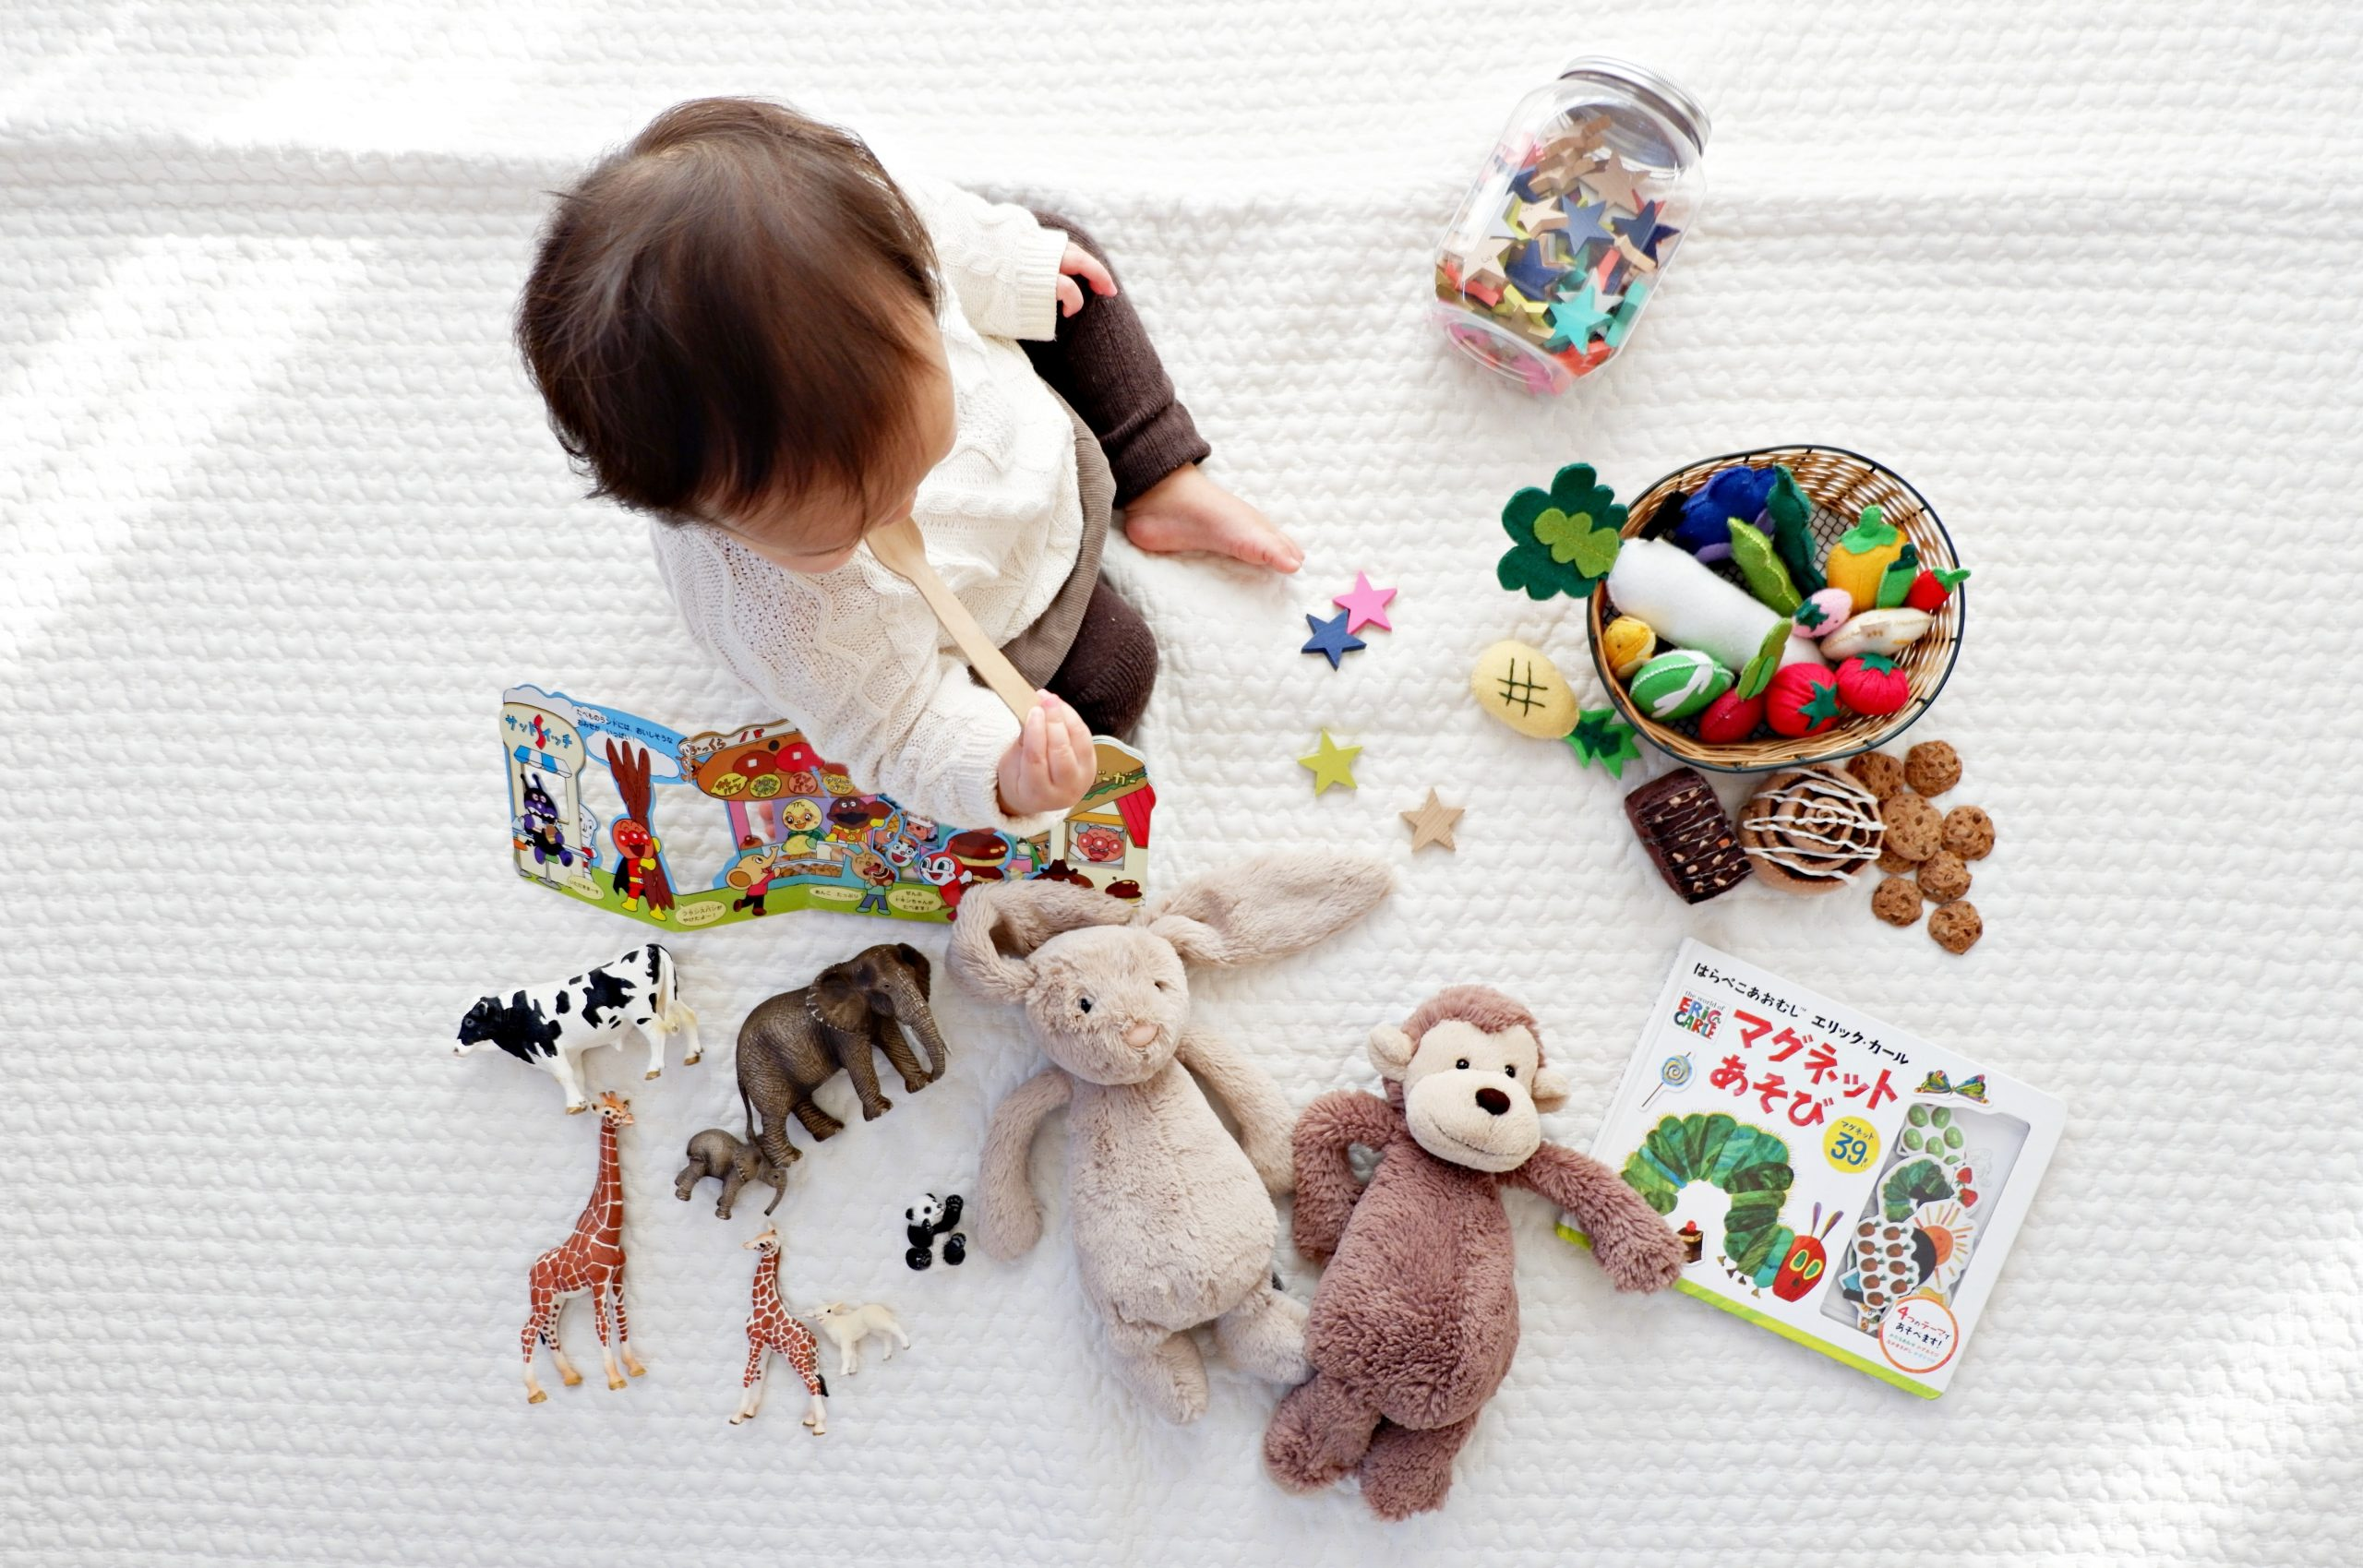 A top down view of a small toddler sitting on a white sheet and surrounded by various different toys